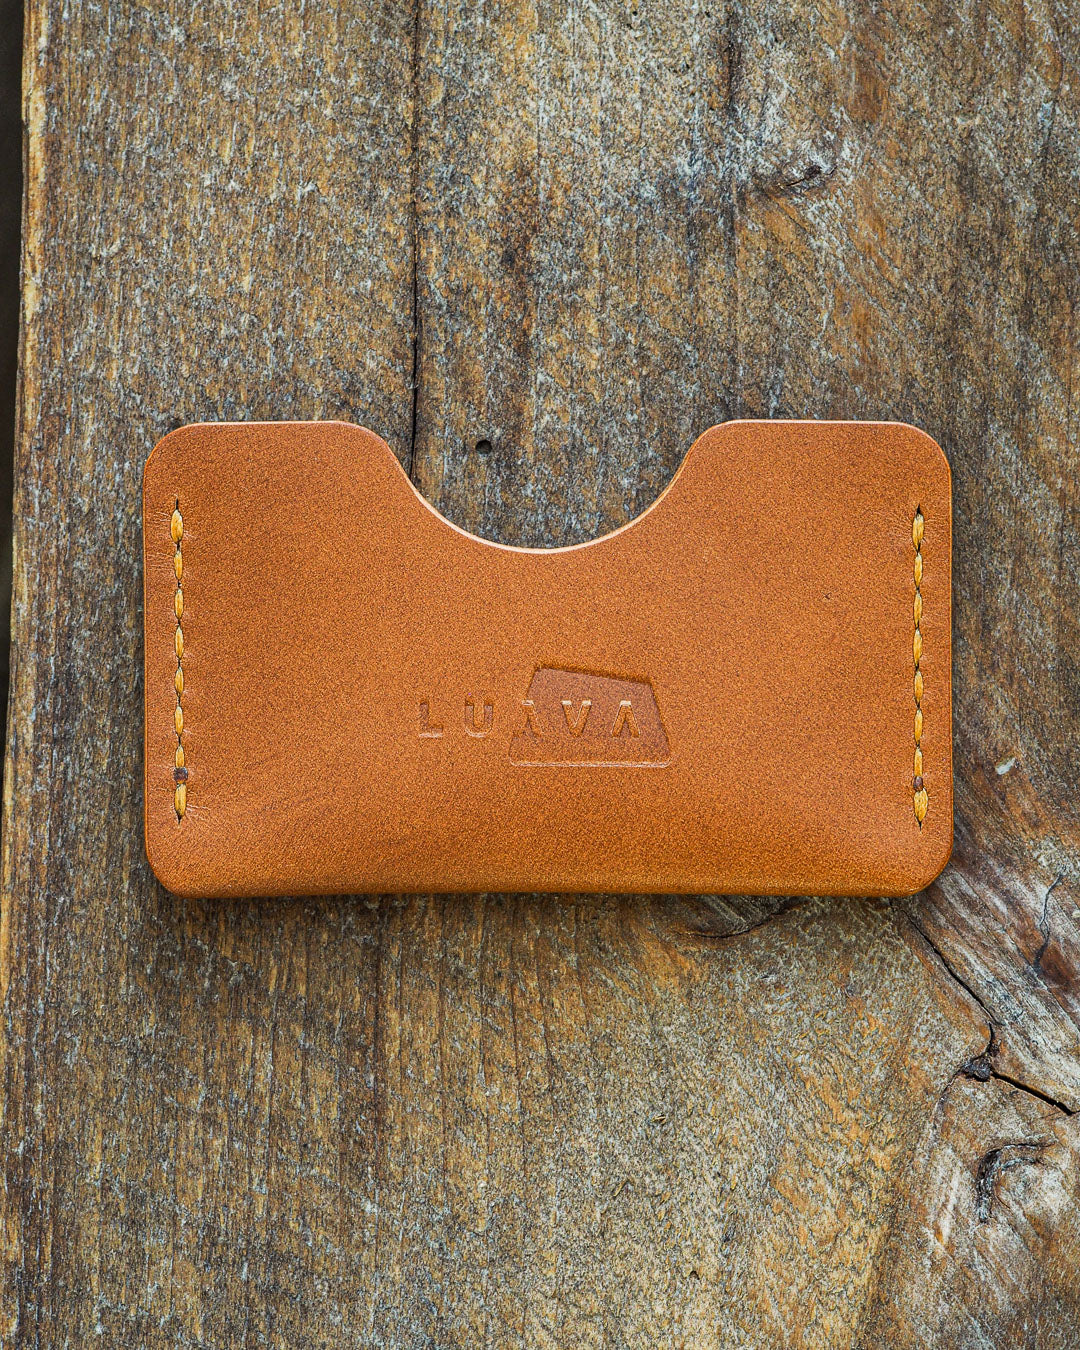 Luava handmade leather wallet handcrafted card holder cardholder made in finland absolute gold koala cognac thread back